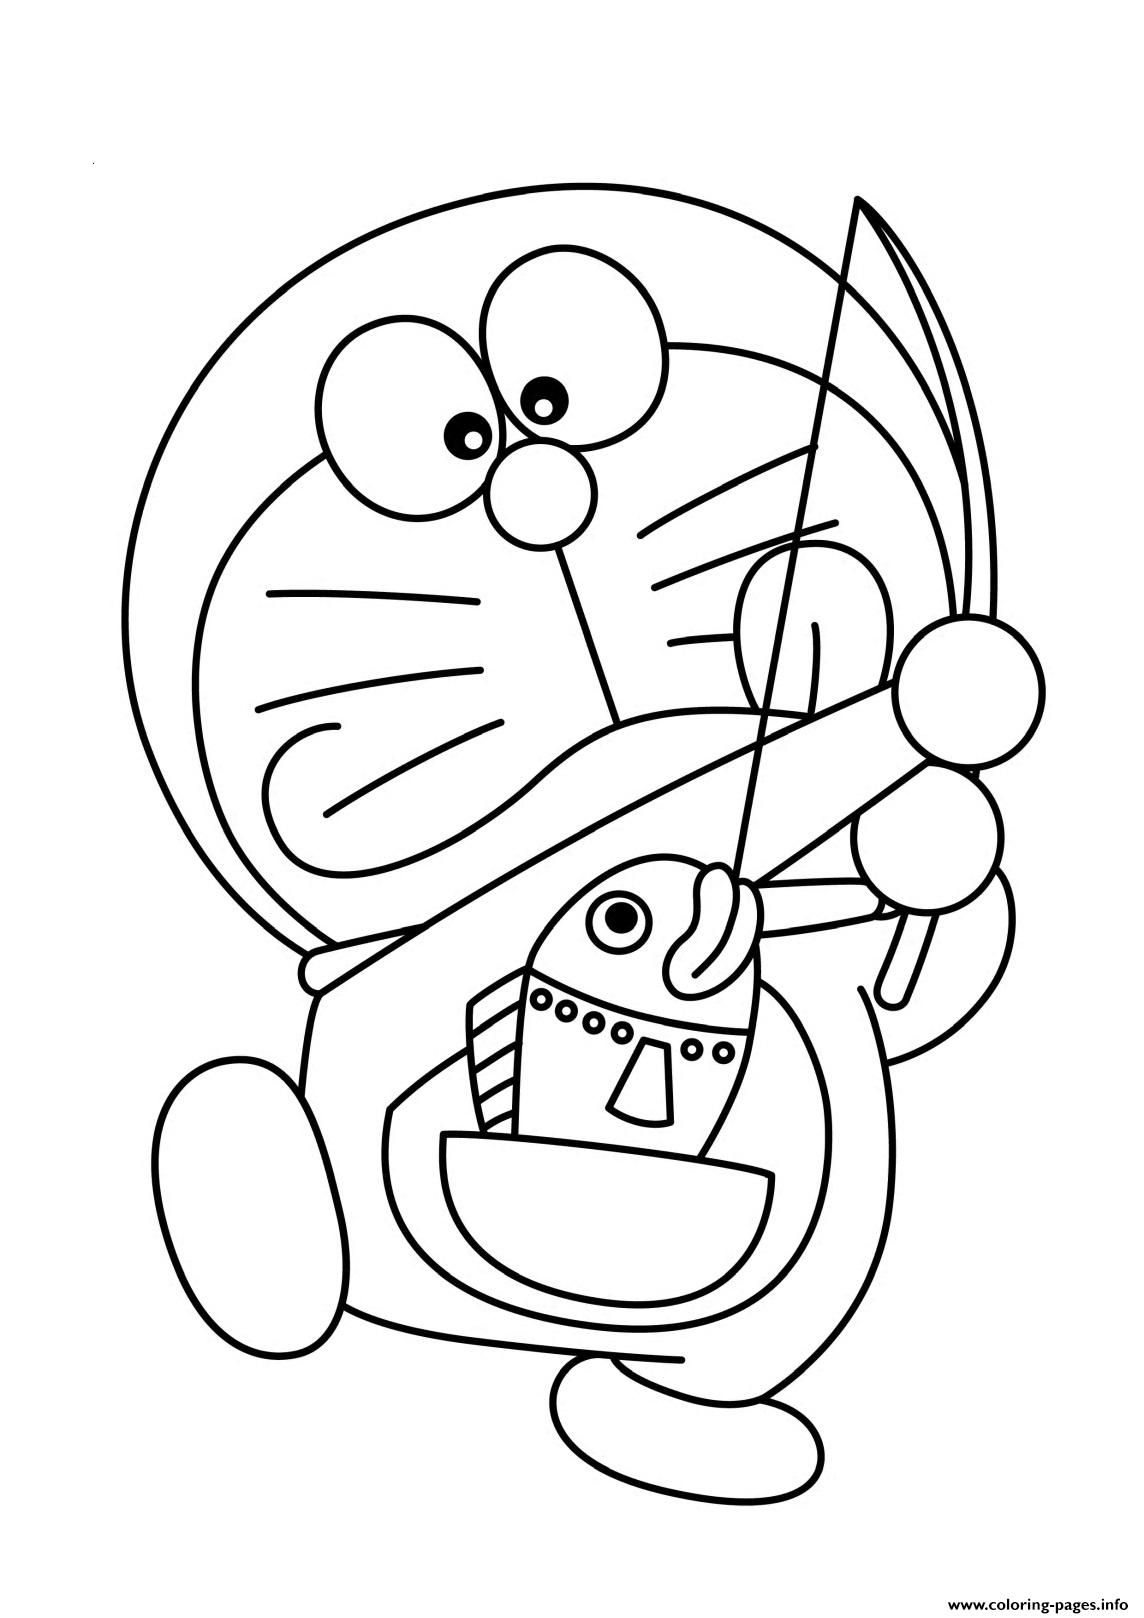 Print Doraemon Fishing From His Pocket503c Coloring Pages